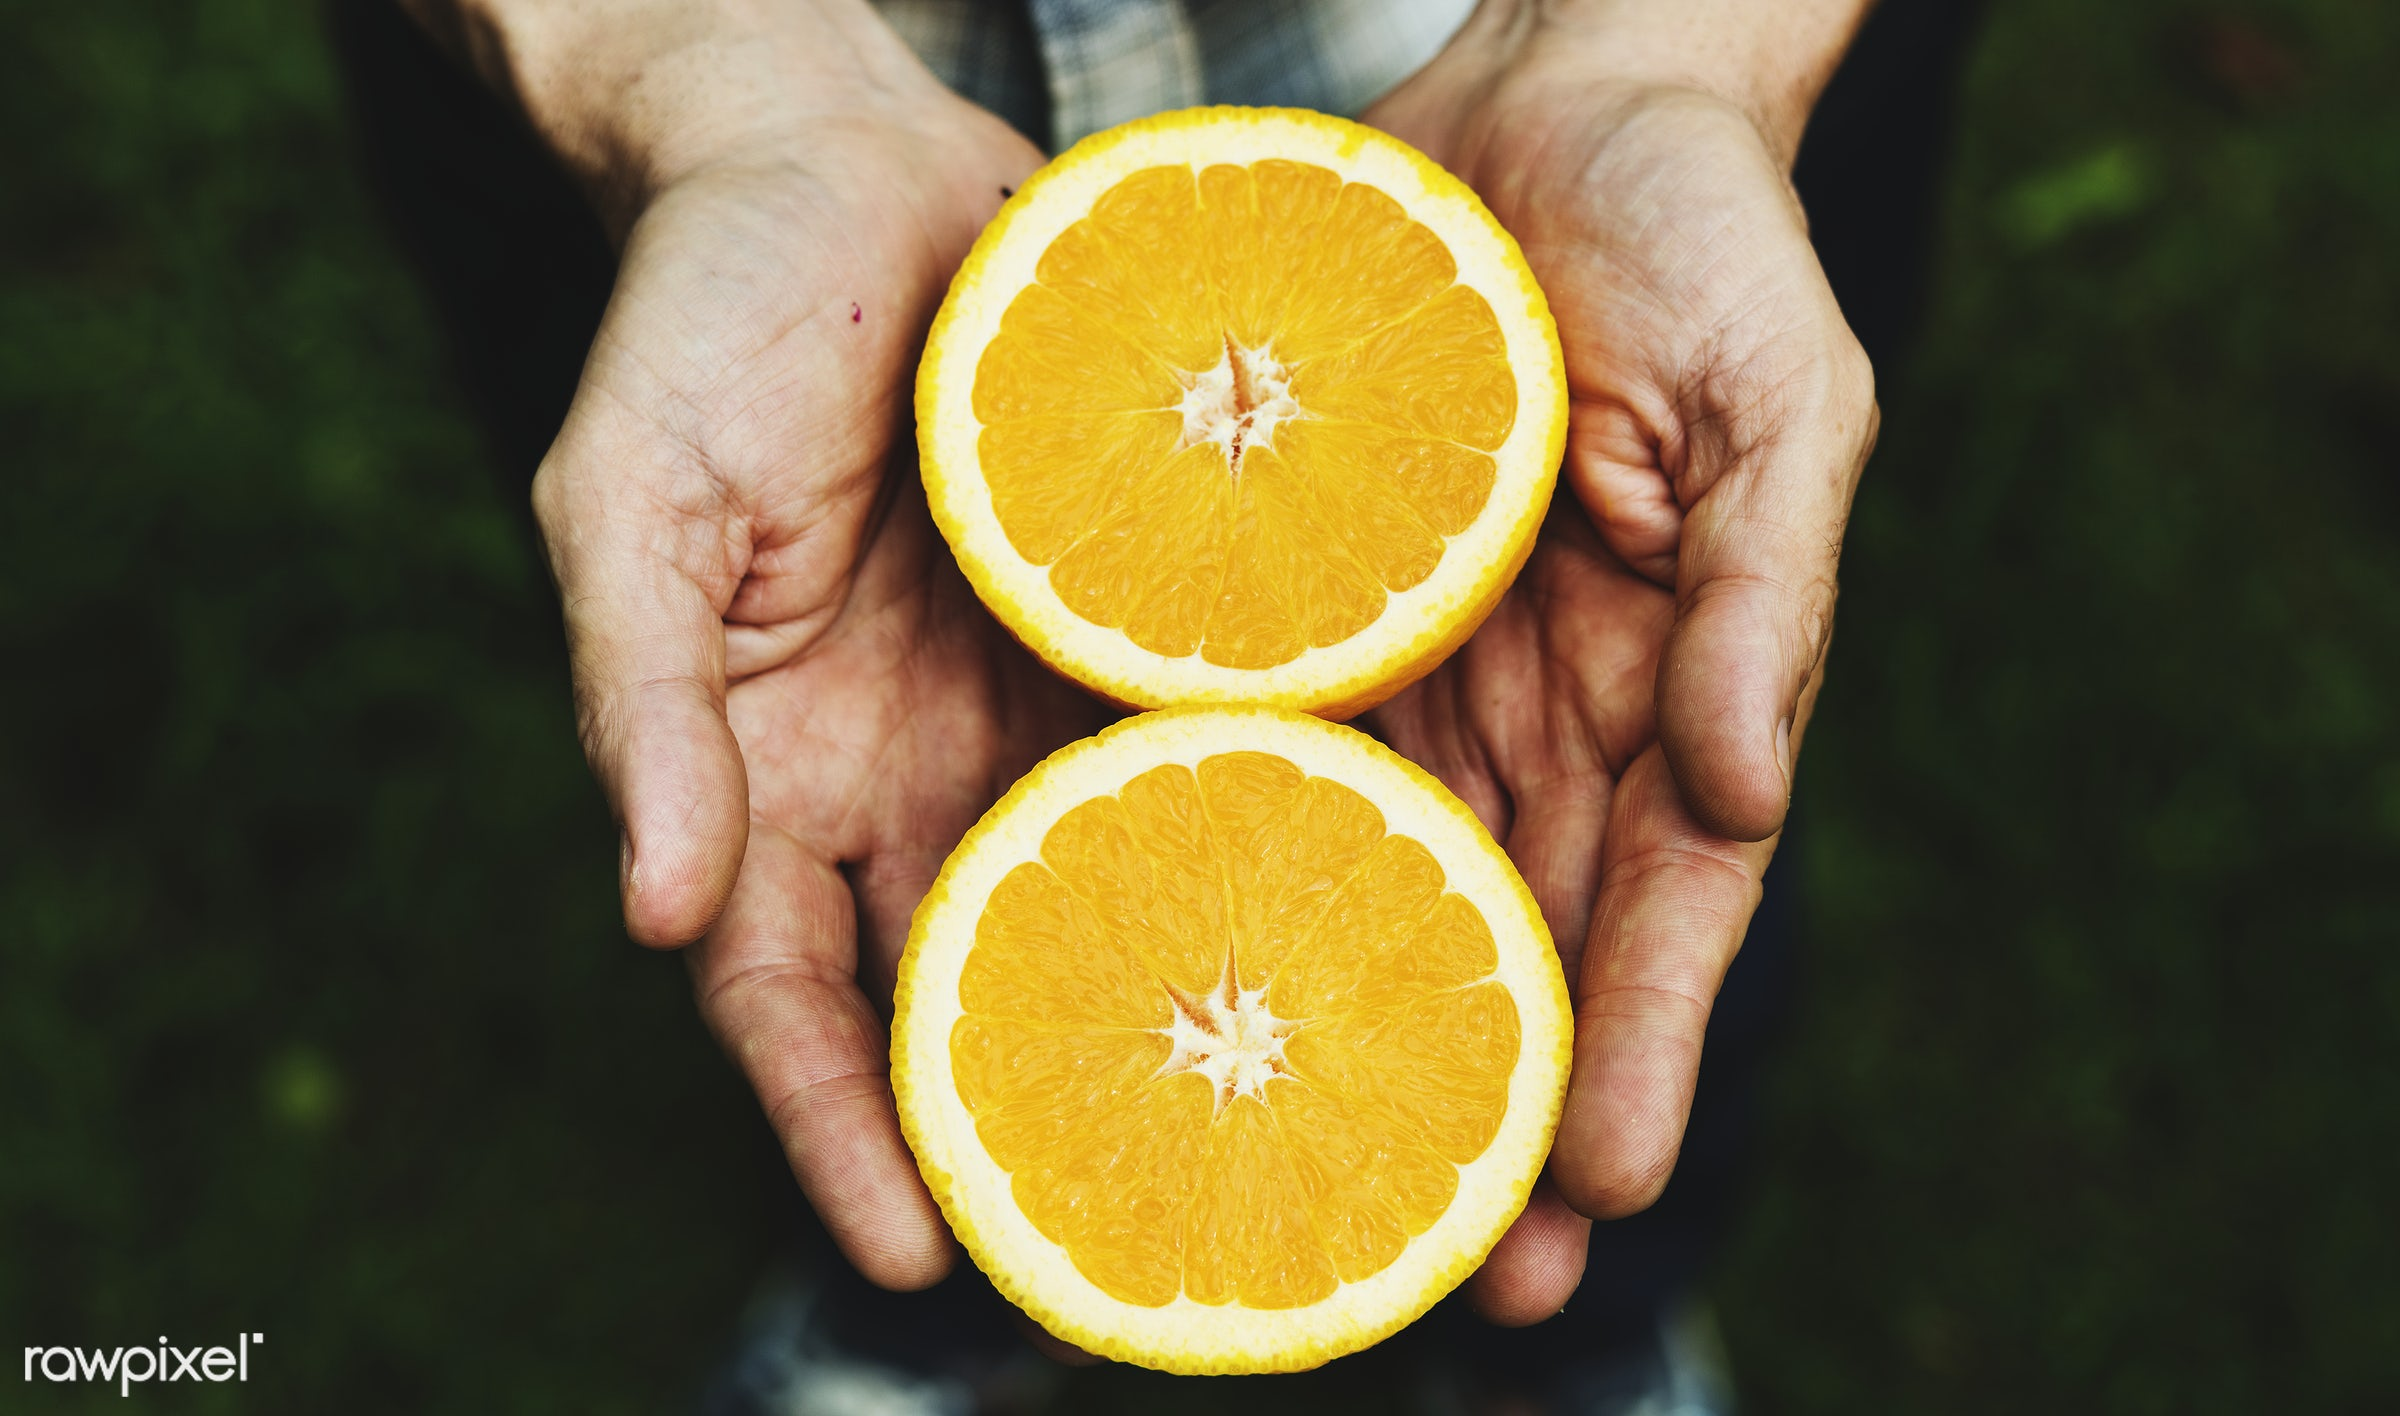 plant, raw, cuisine, holding, crop, nature, fresh, hands, pick, ingredient, cultivation, closeup, orange, product, picking,...